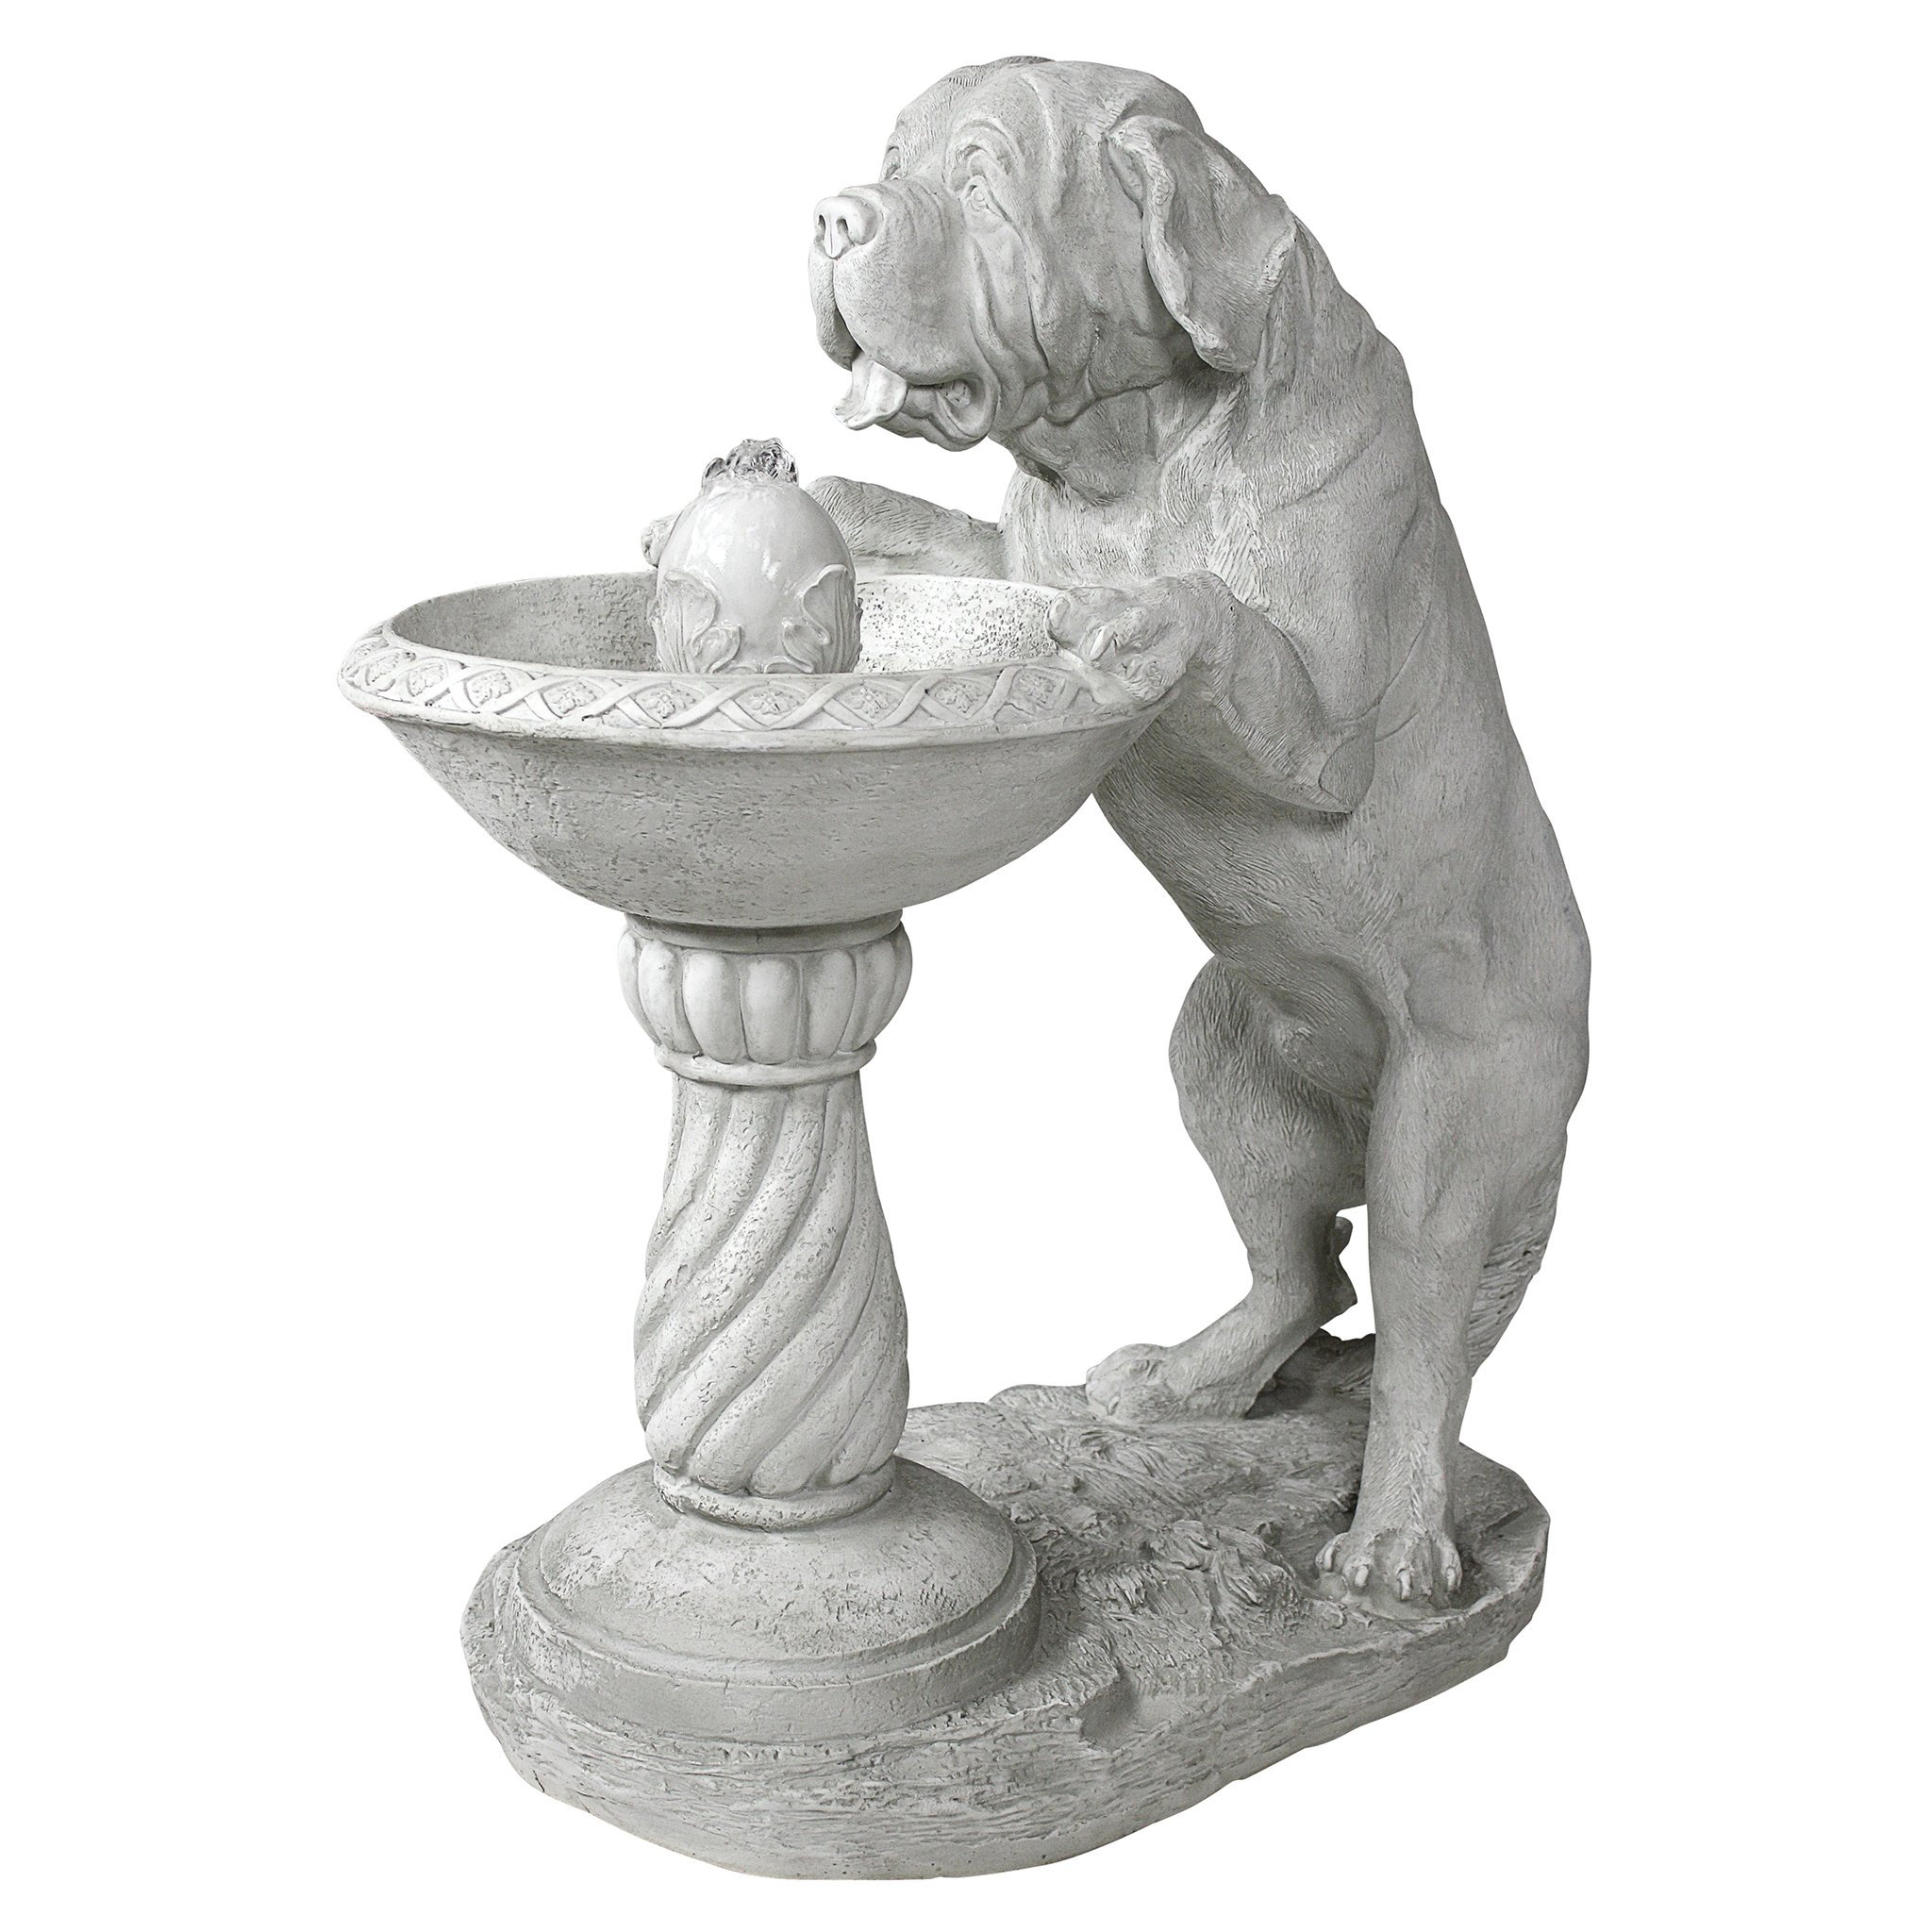 Water Fountain - 3 Foot Tall Quenching a Big Thirst Garden Decor Dog Fountain - Outdoor Water Feature